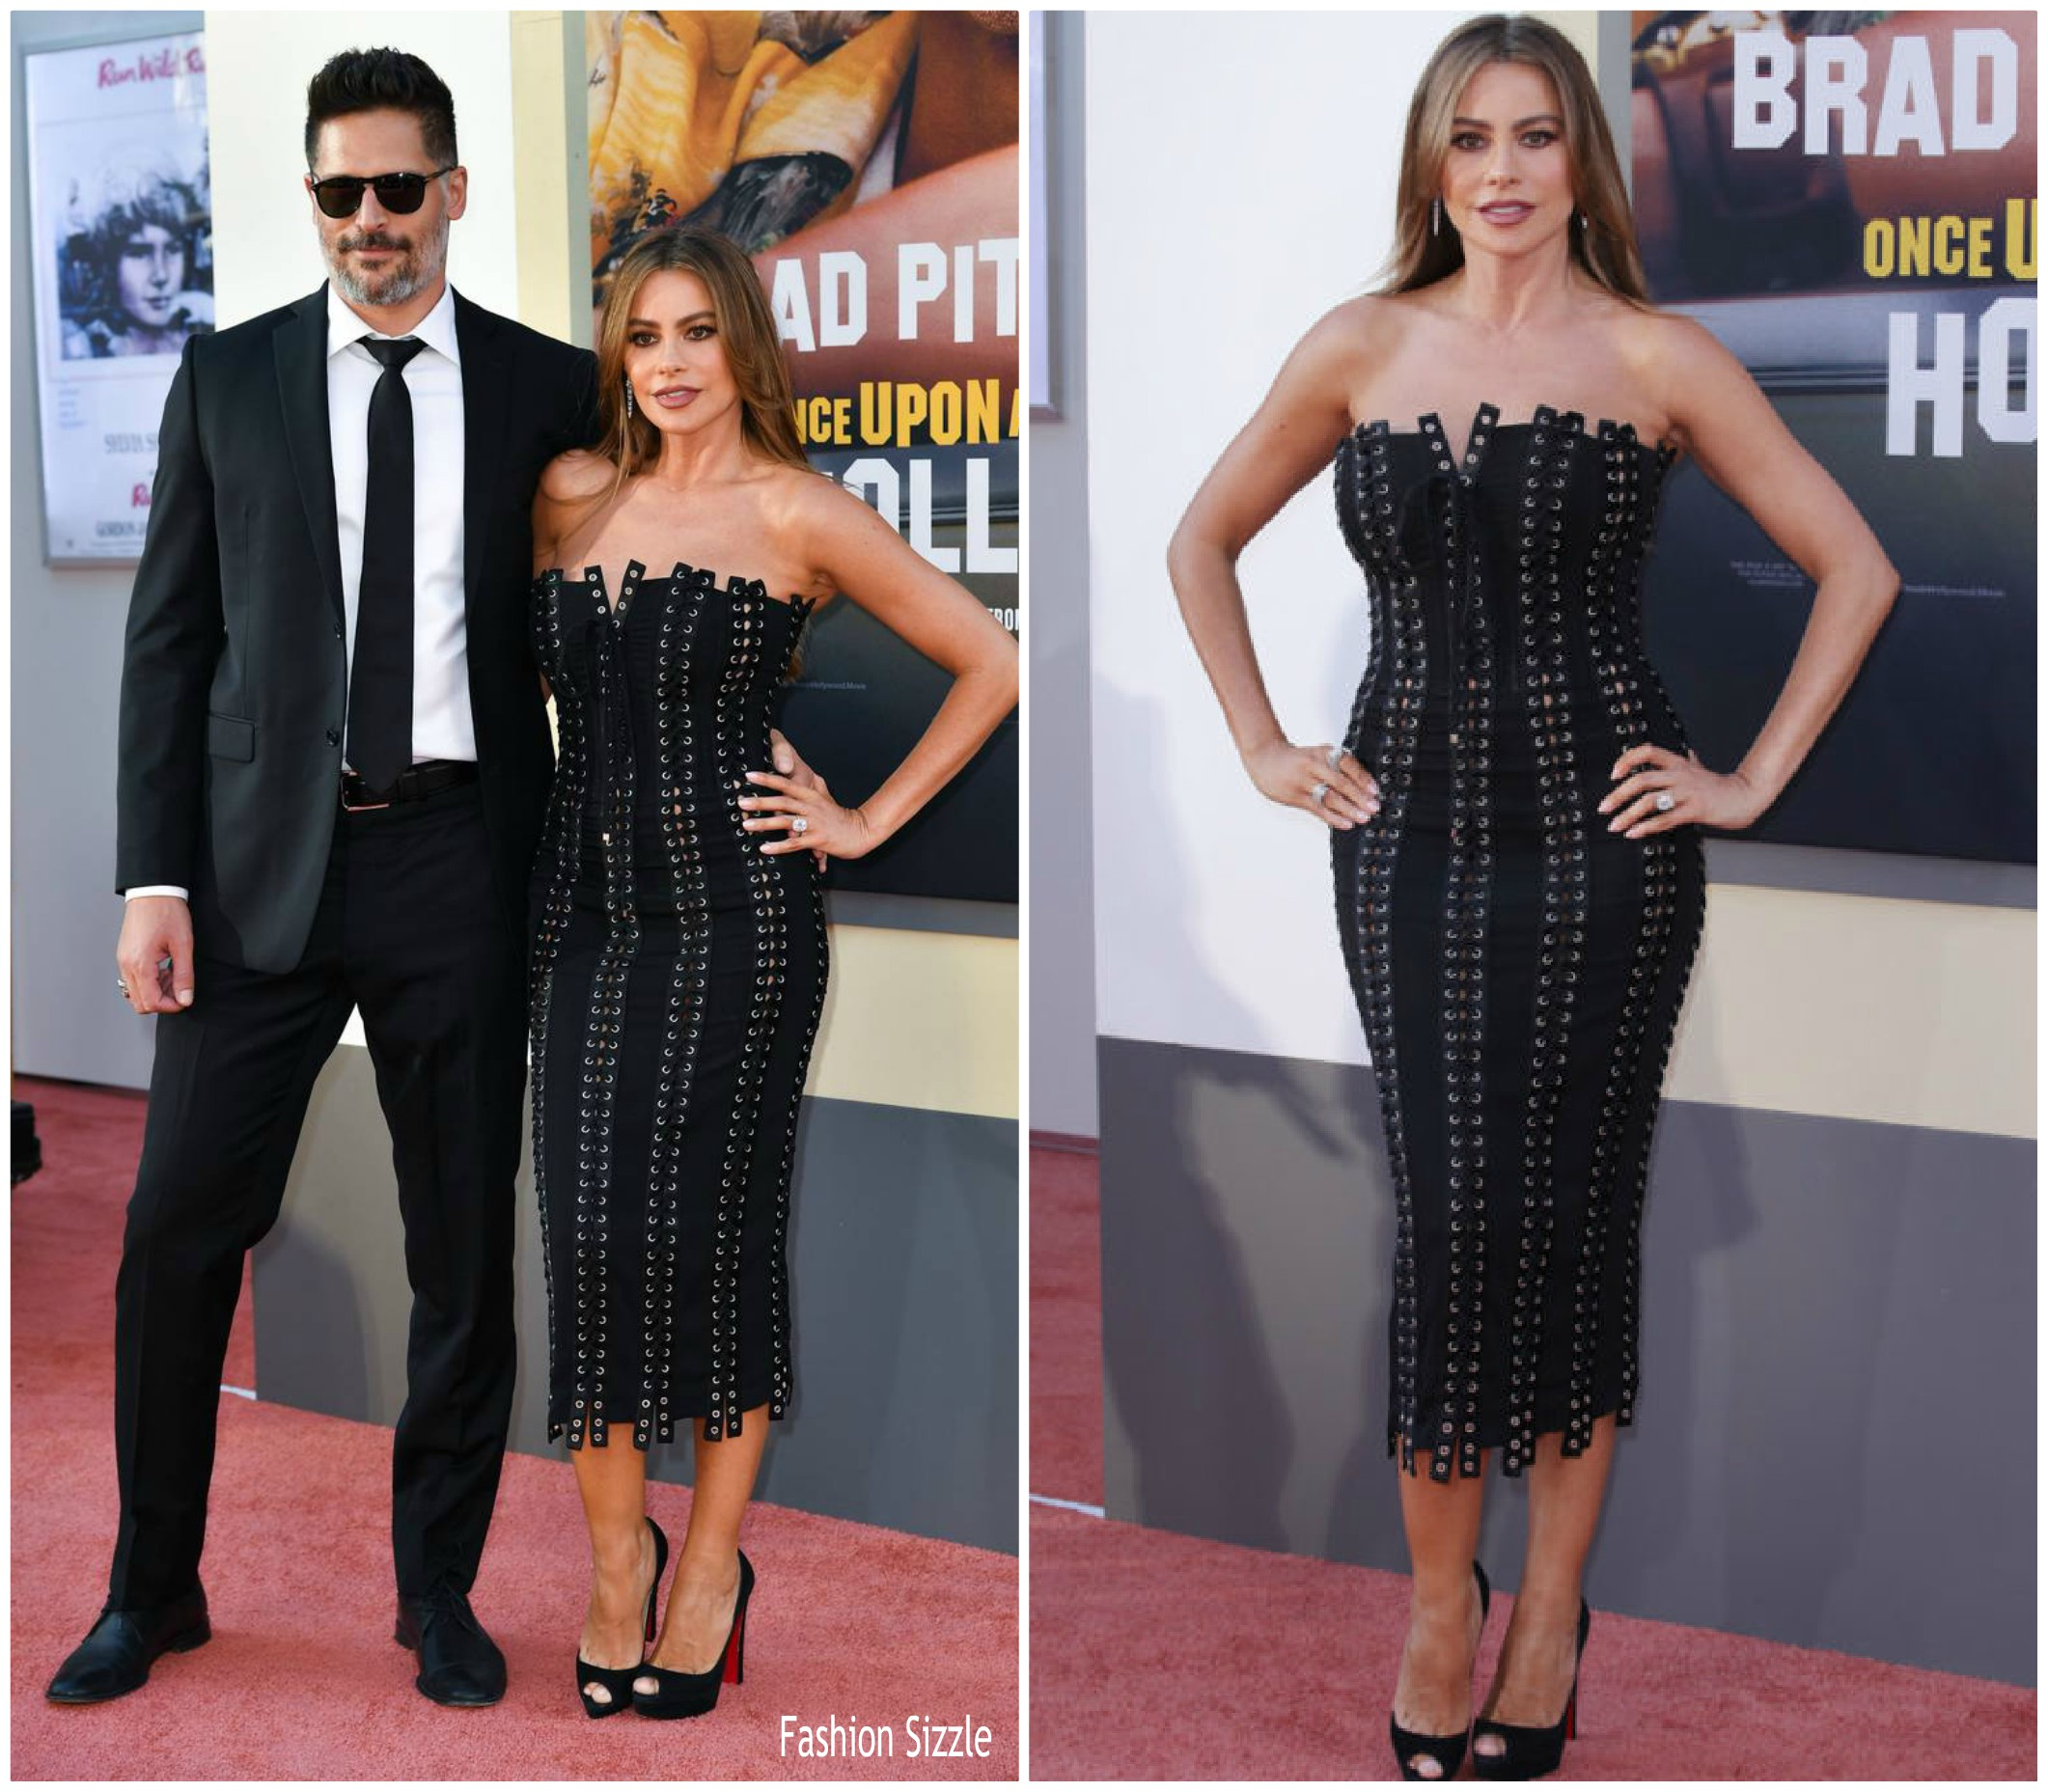 sofia-vergara-in-dolce-gabbana-once-upon-a-time-hollywood-la-premiere